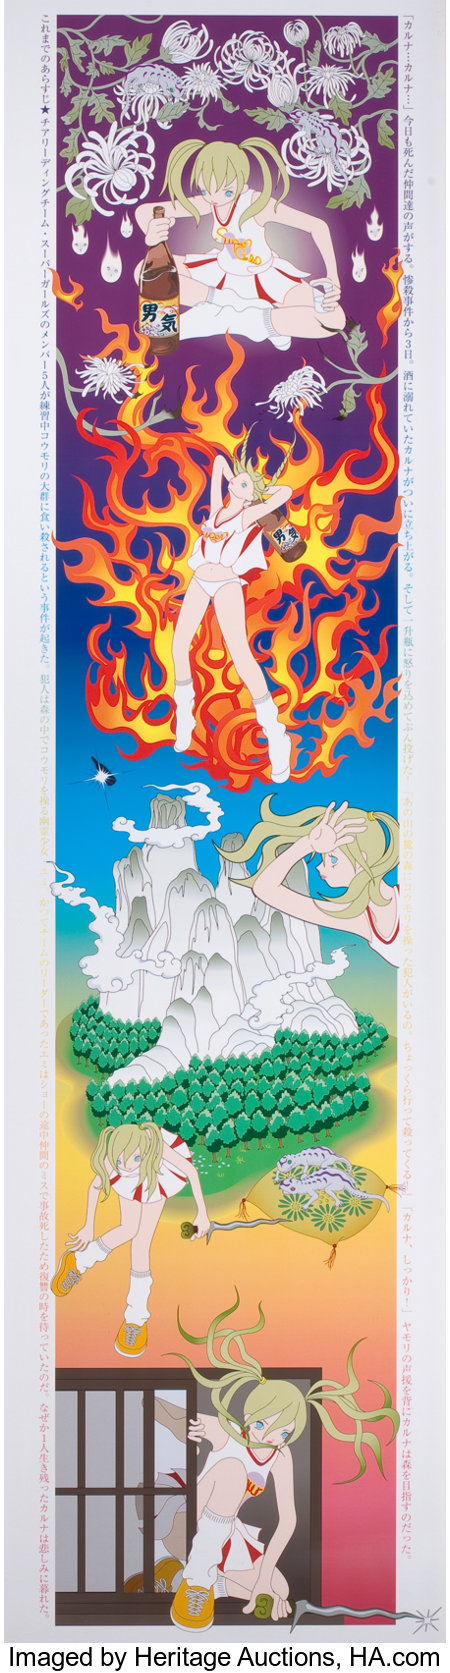 CHIHO AOSHIMA (Japanese, b. 1974) In Sane Karune, 2000 Inkjet print 66 x 17-3/4 inches (167.6 x 45.1 cm) From the ed...